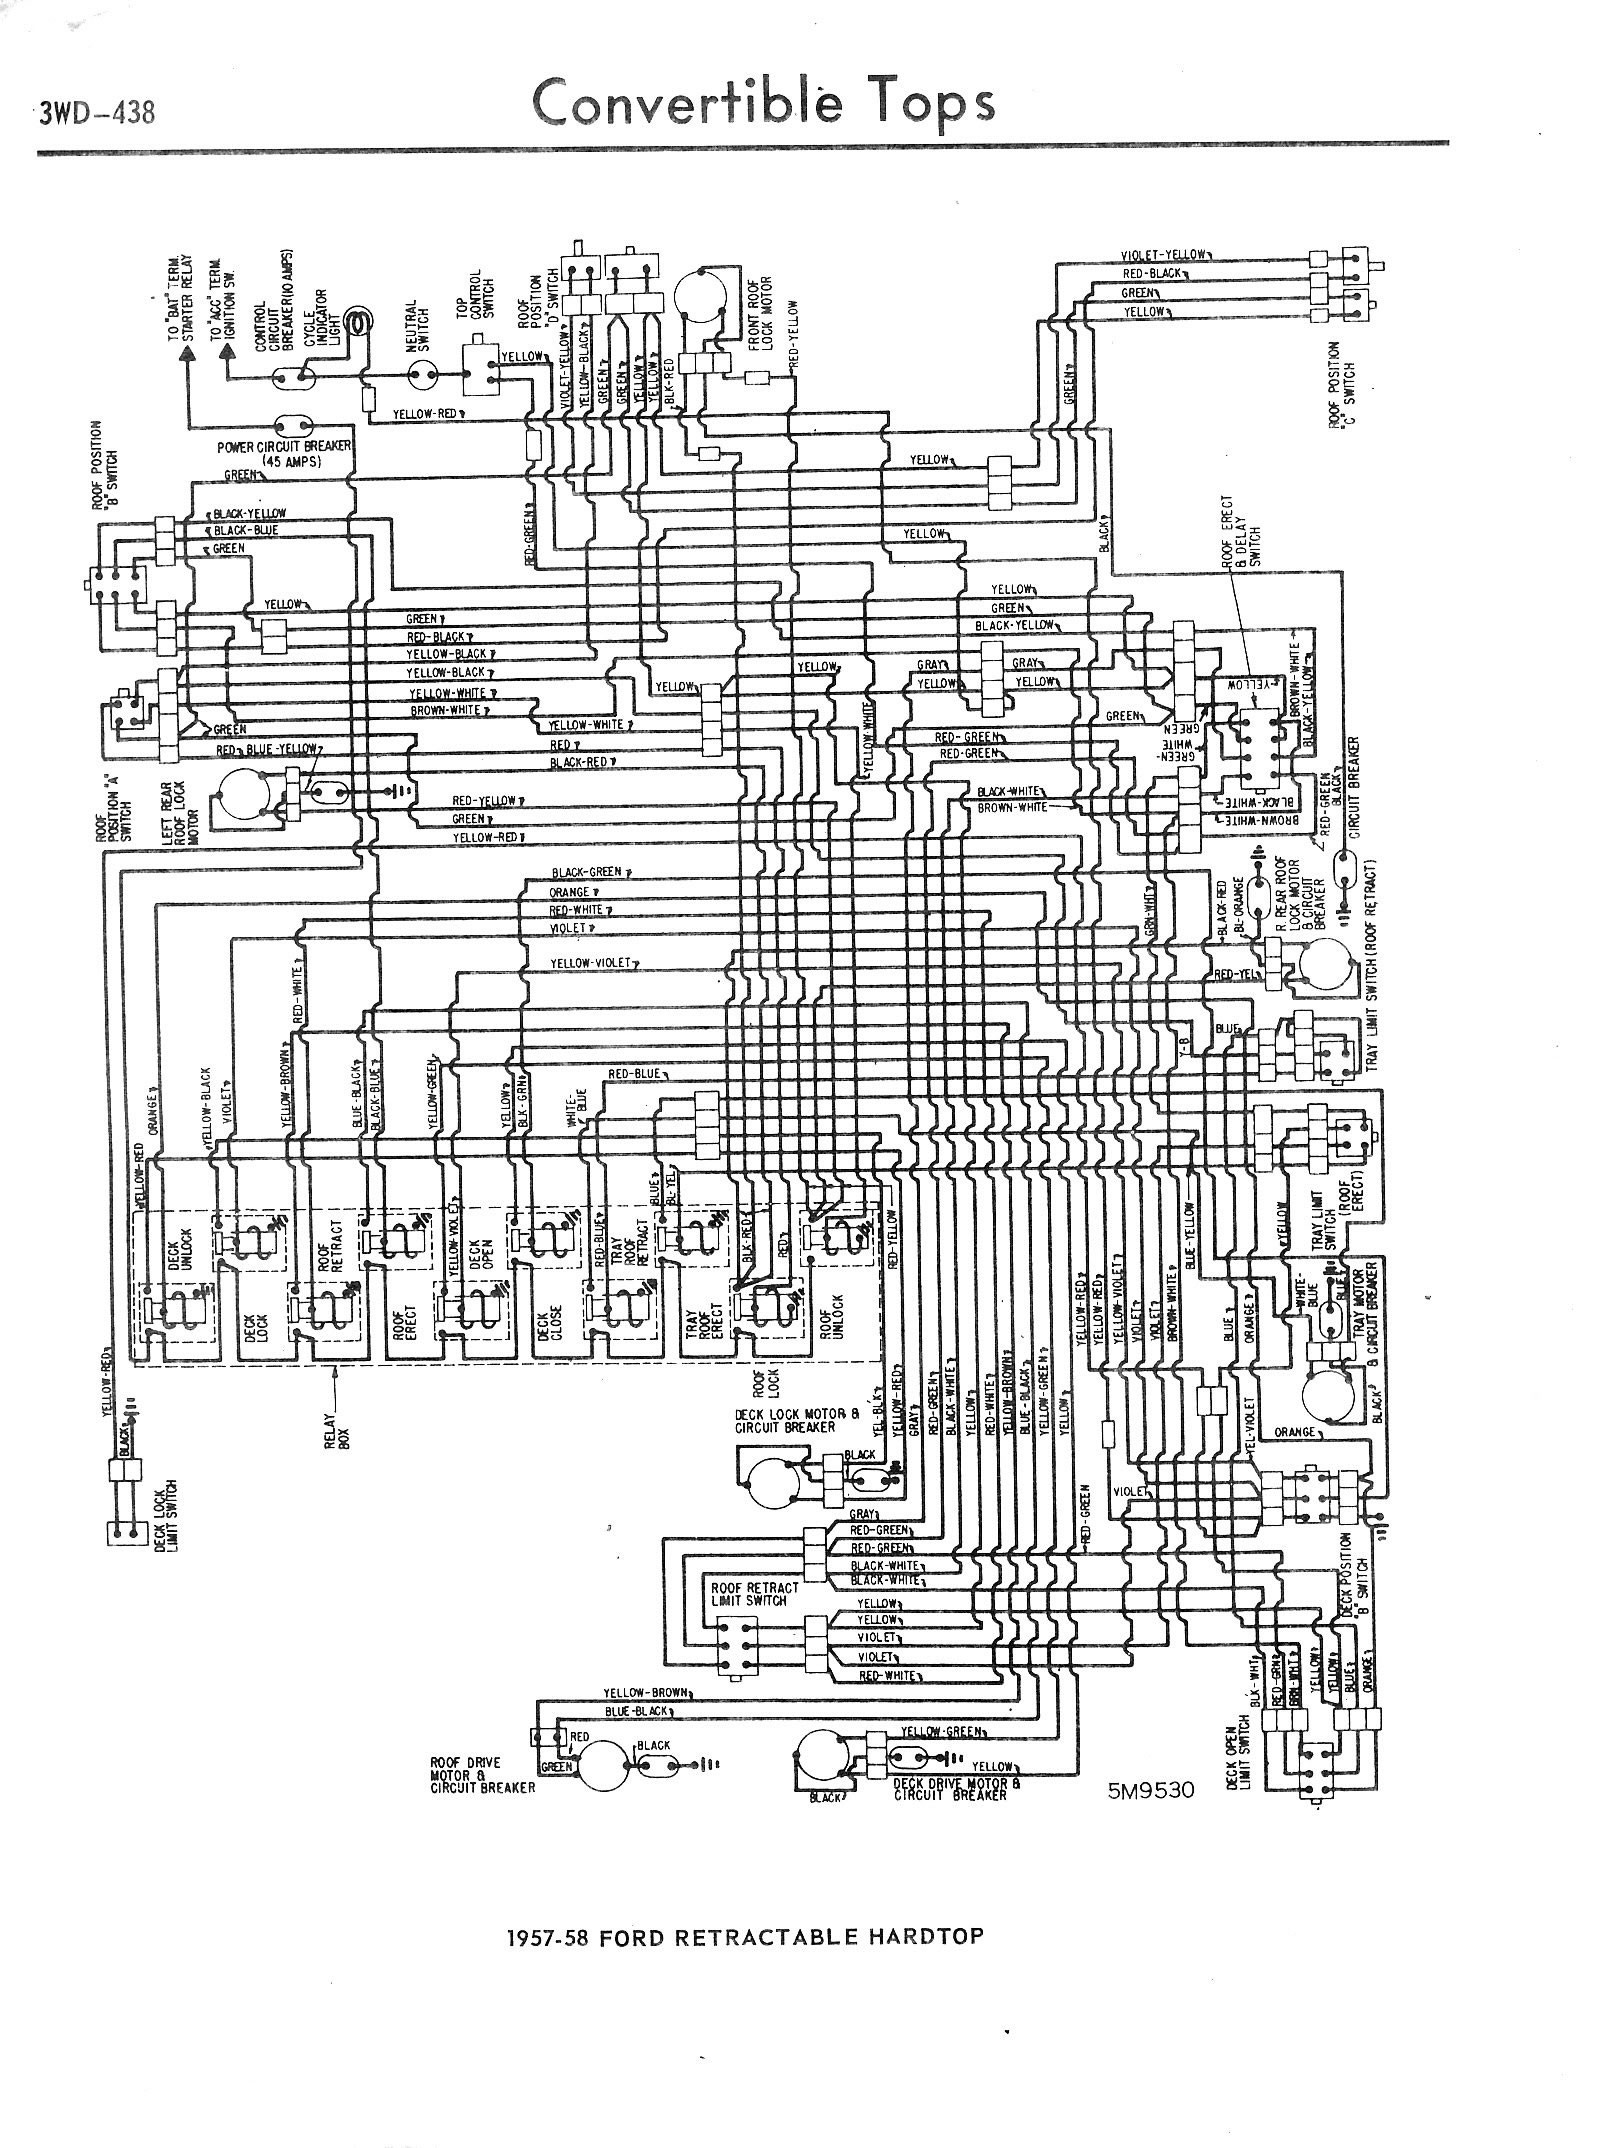 1965 Rotax 247 Wiring Diagram 1957 1965 Accessory Wiring Diagrams 3wd 438 Of 1965 Rotax 247 Wiring Diagram